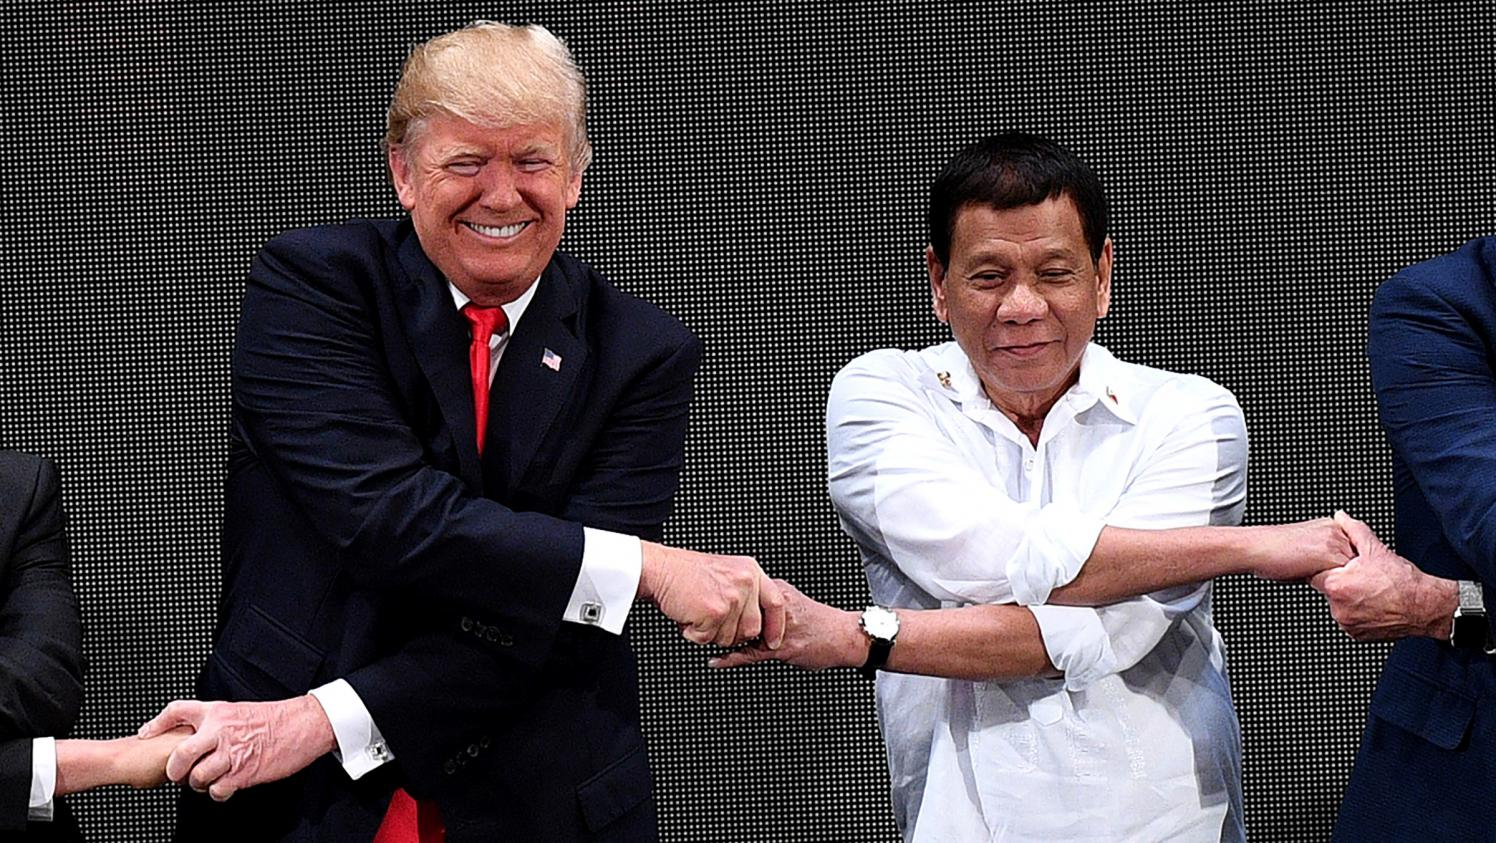 Aux Philippines, Donald Trump Et Son Homologue Rodrigo Duterte Rivalisent D'amabilités